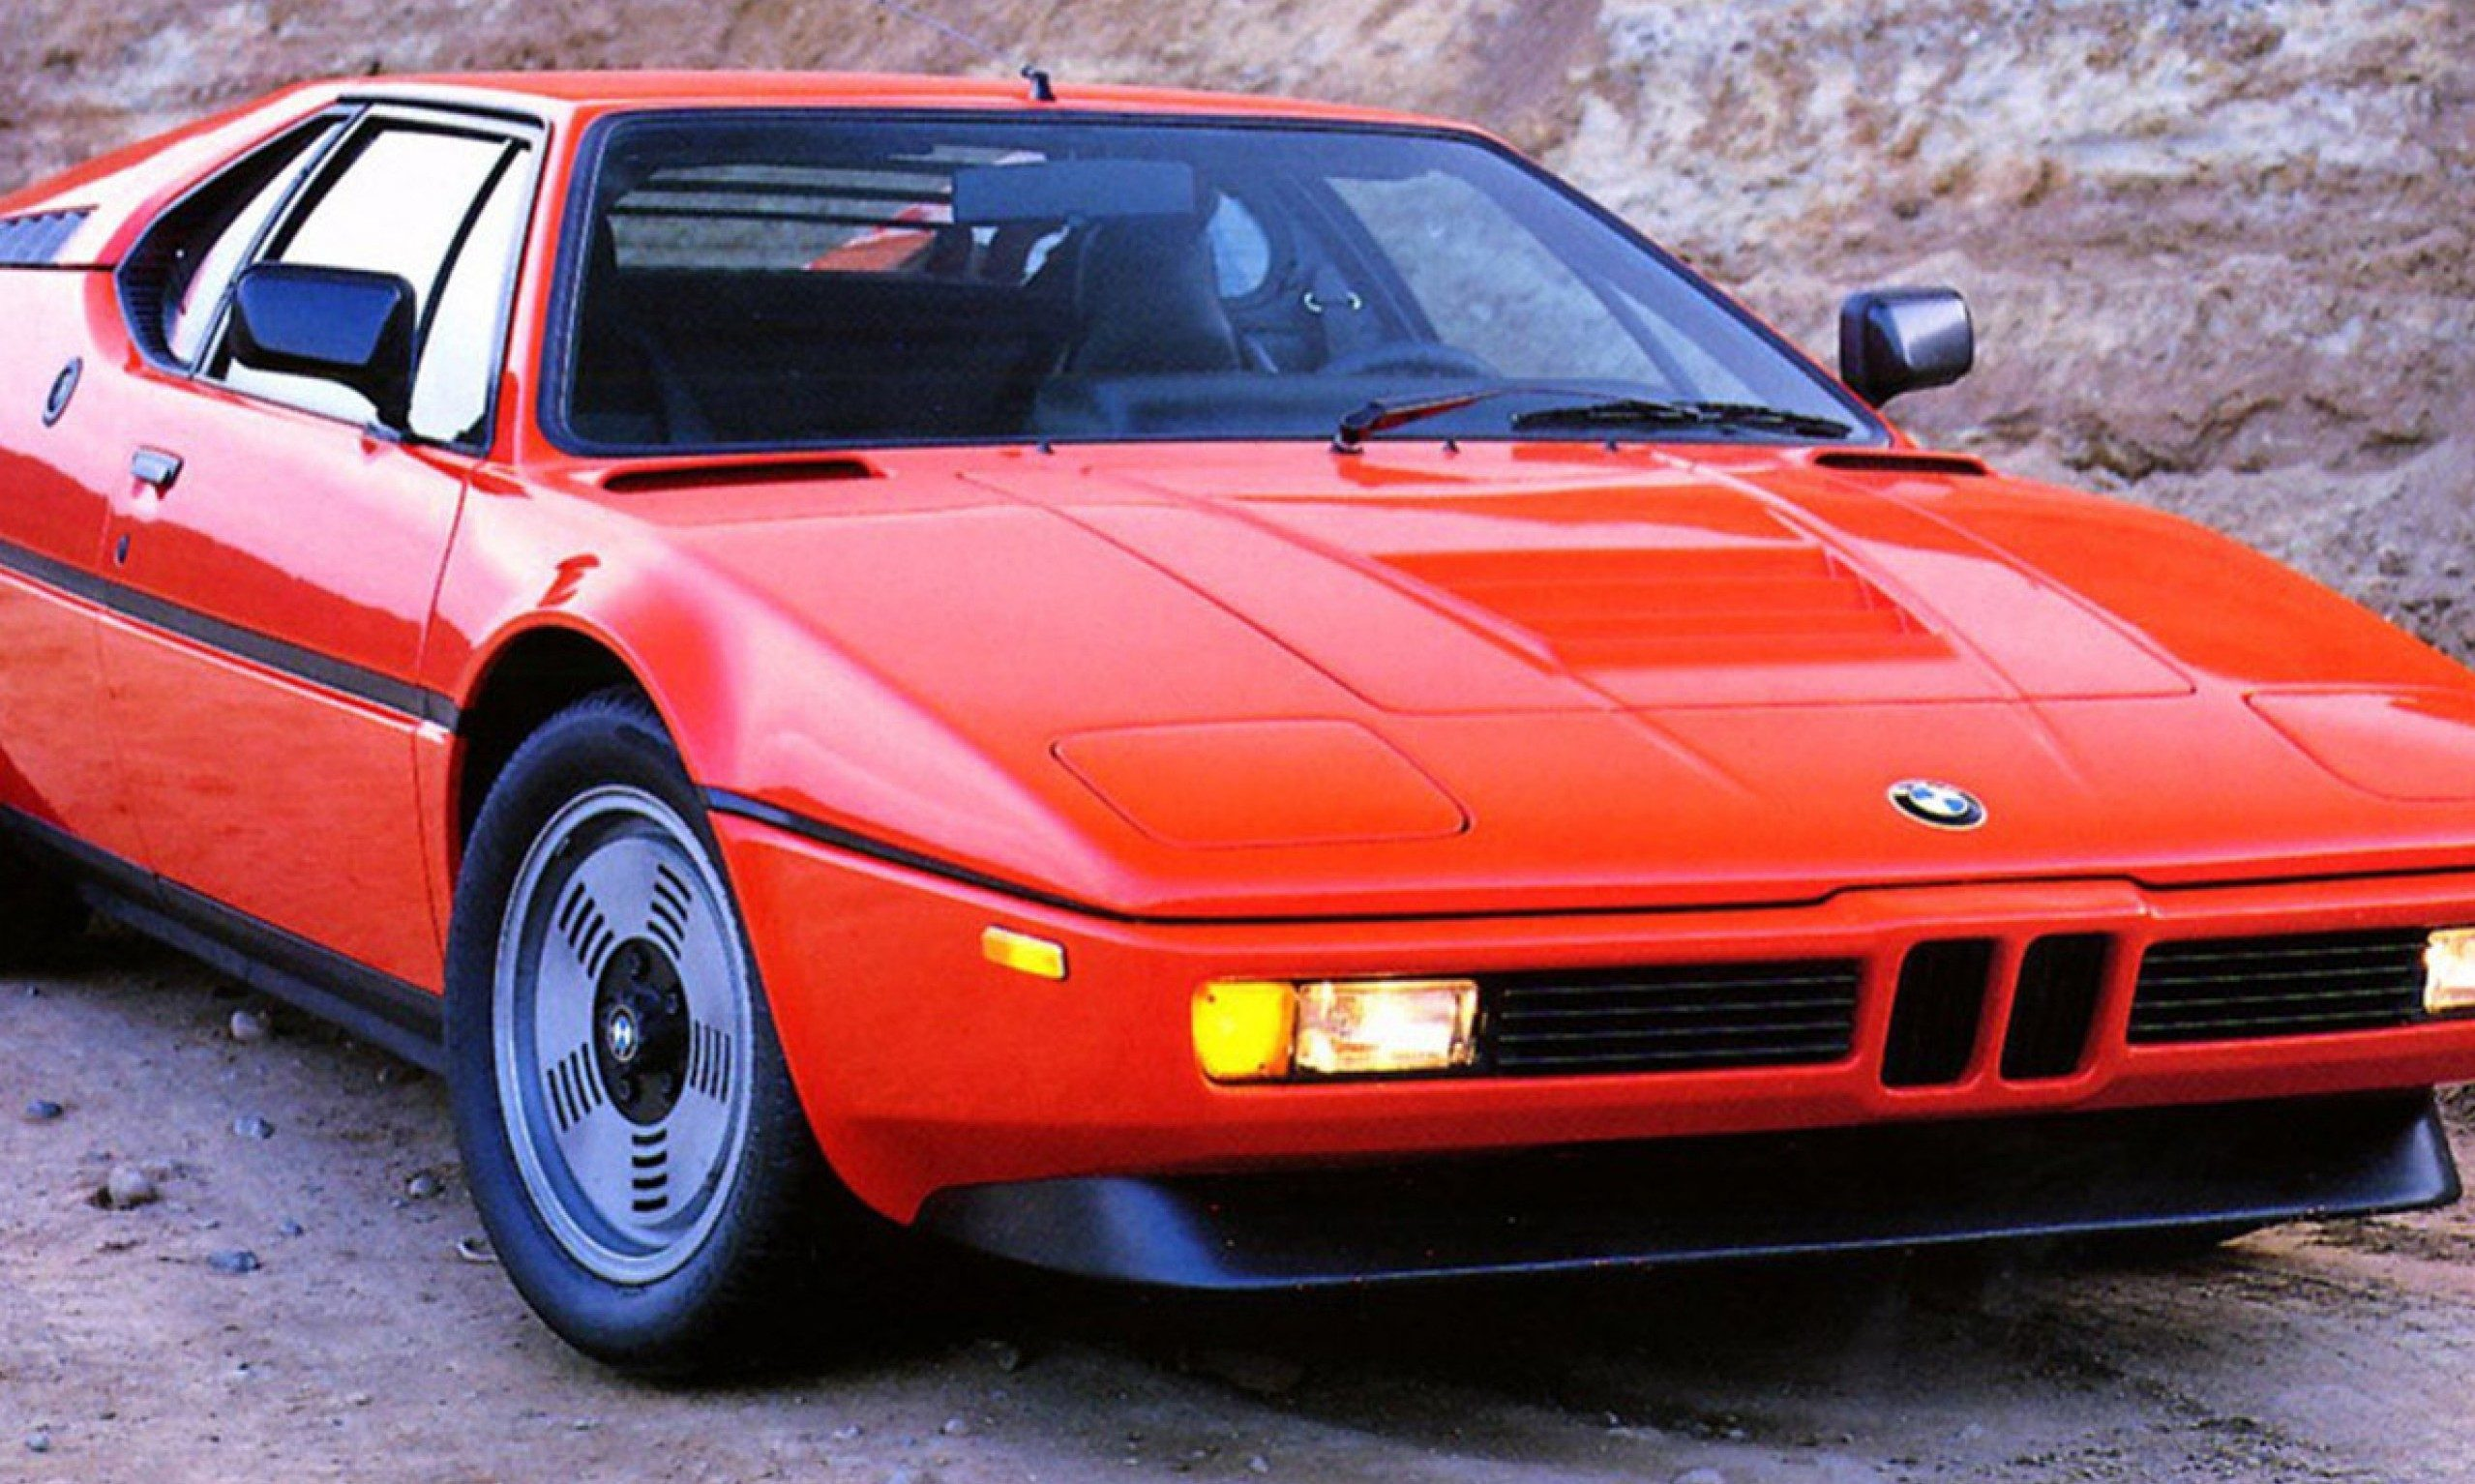 supercars then and now 1980 bmw m1 versus 2008 bmw m1 hommage. Black Bedroom Furniture Sets. Home Design Ideas